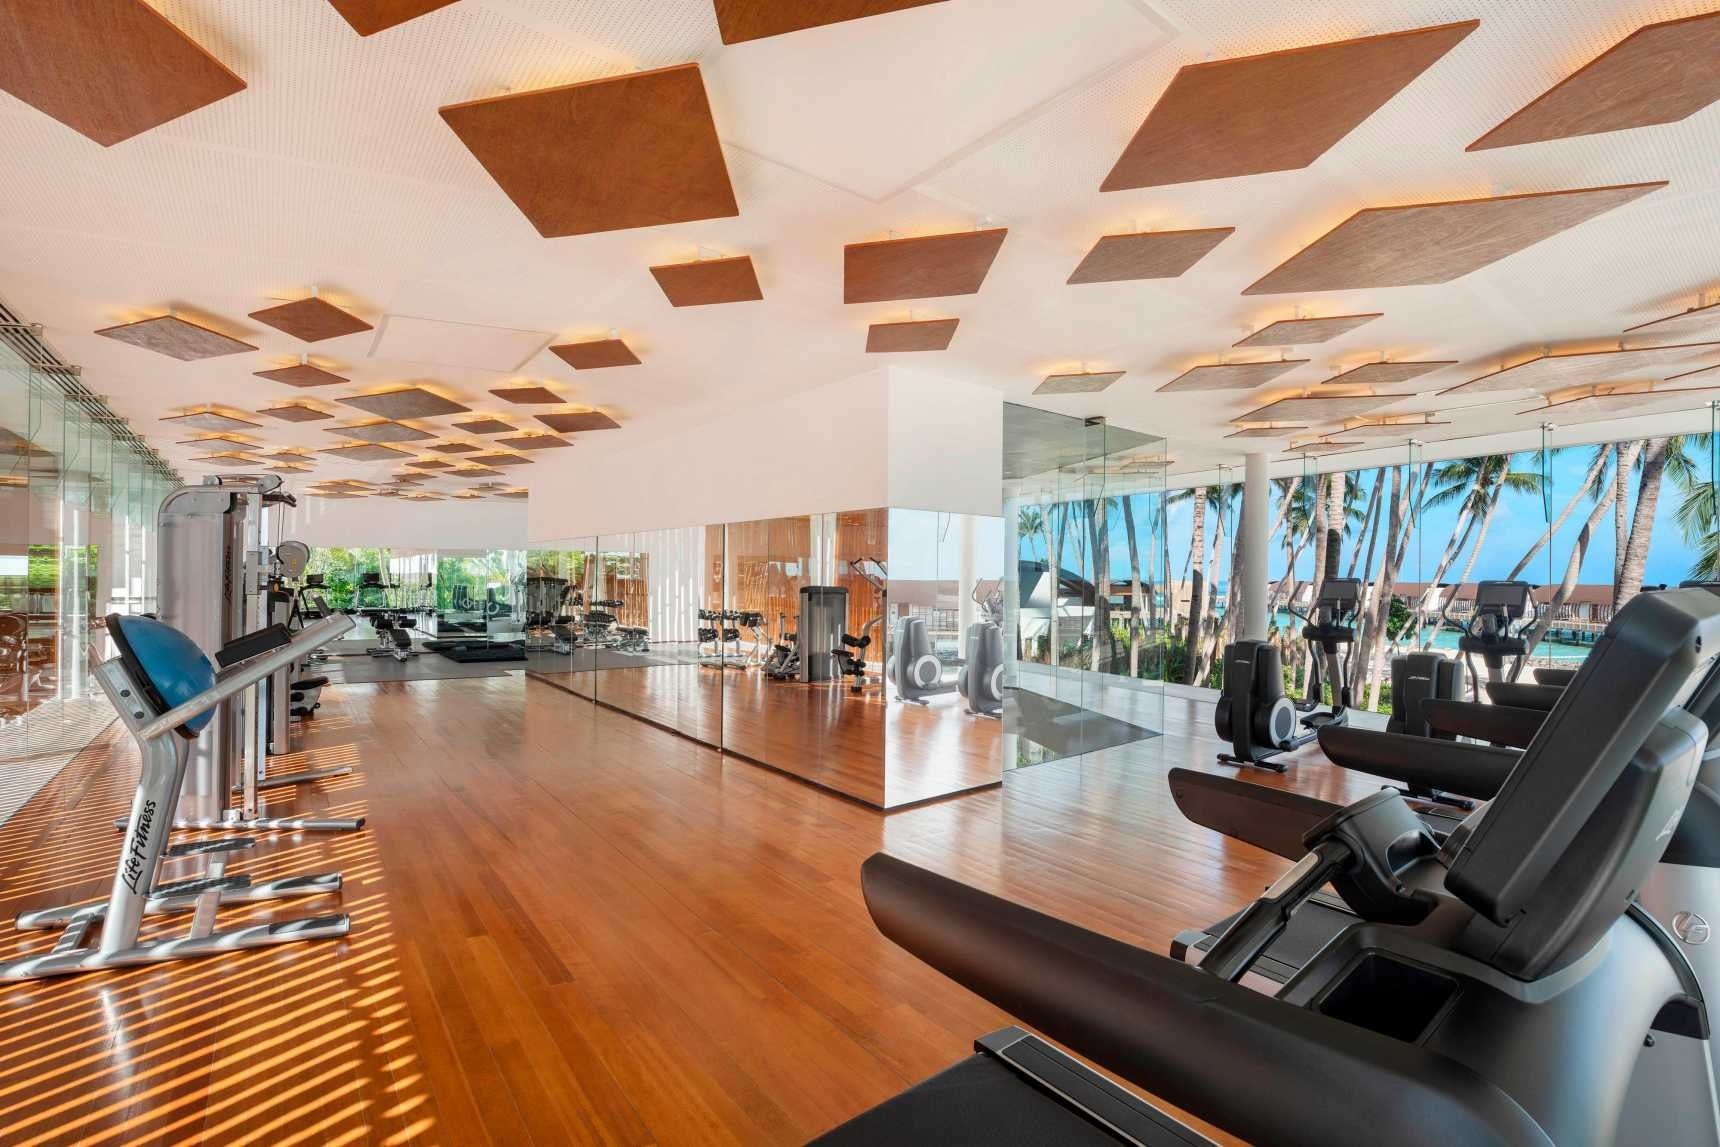 westin workout interior view